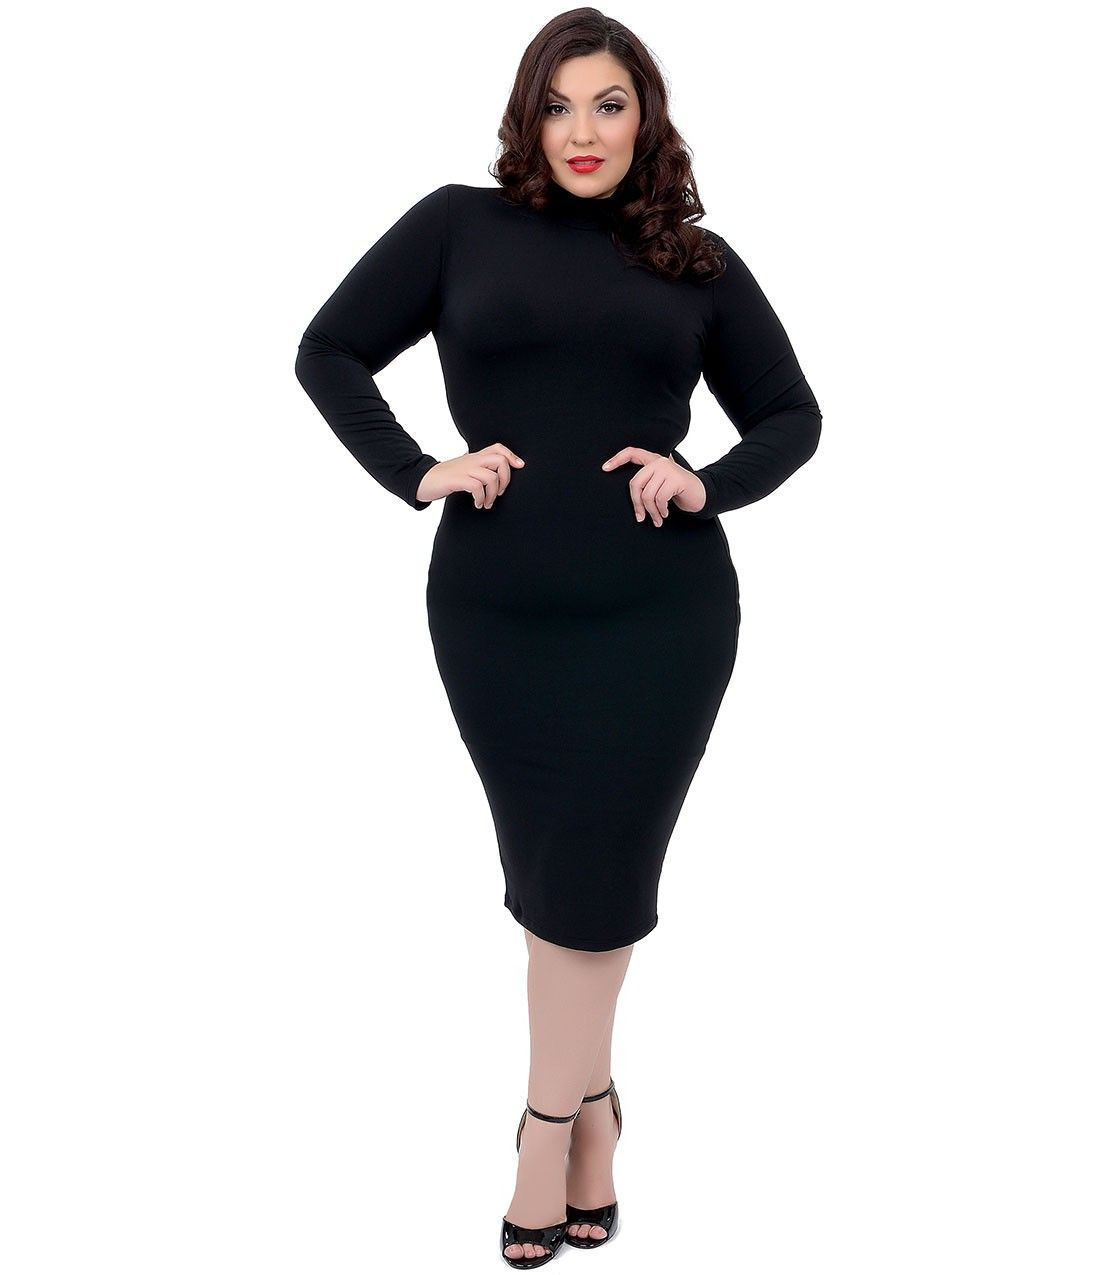 plus size 1960s style black long sleeve fitted mod wiggle dress